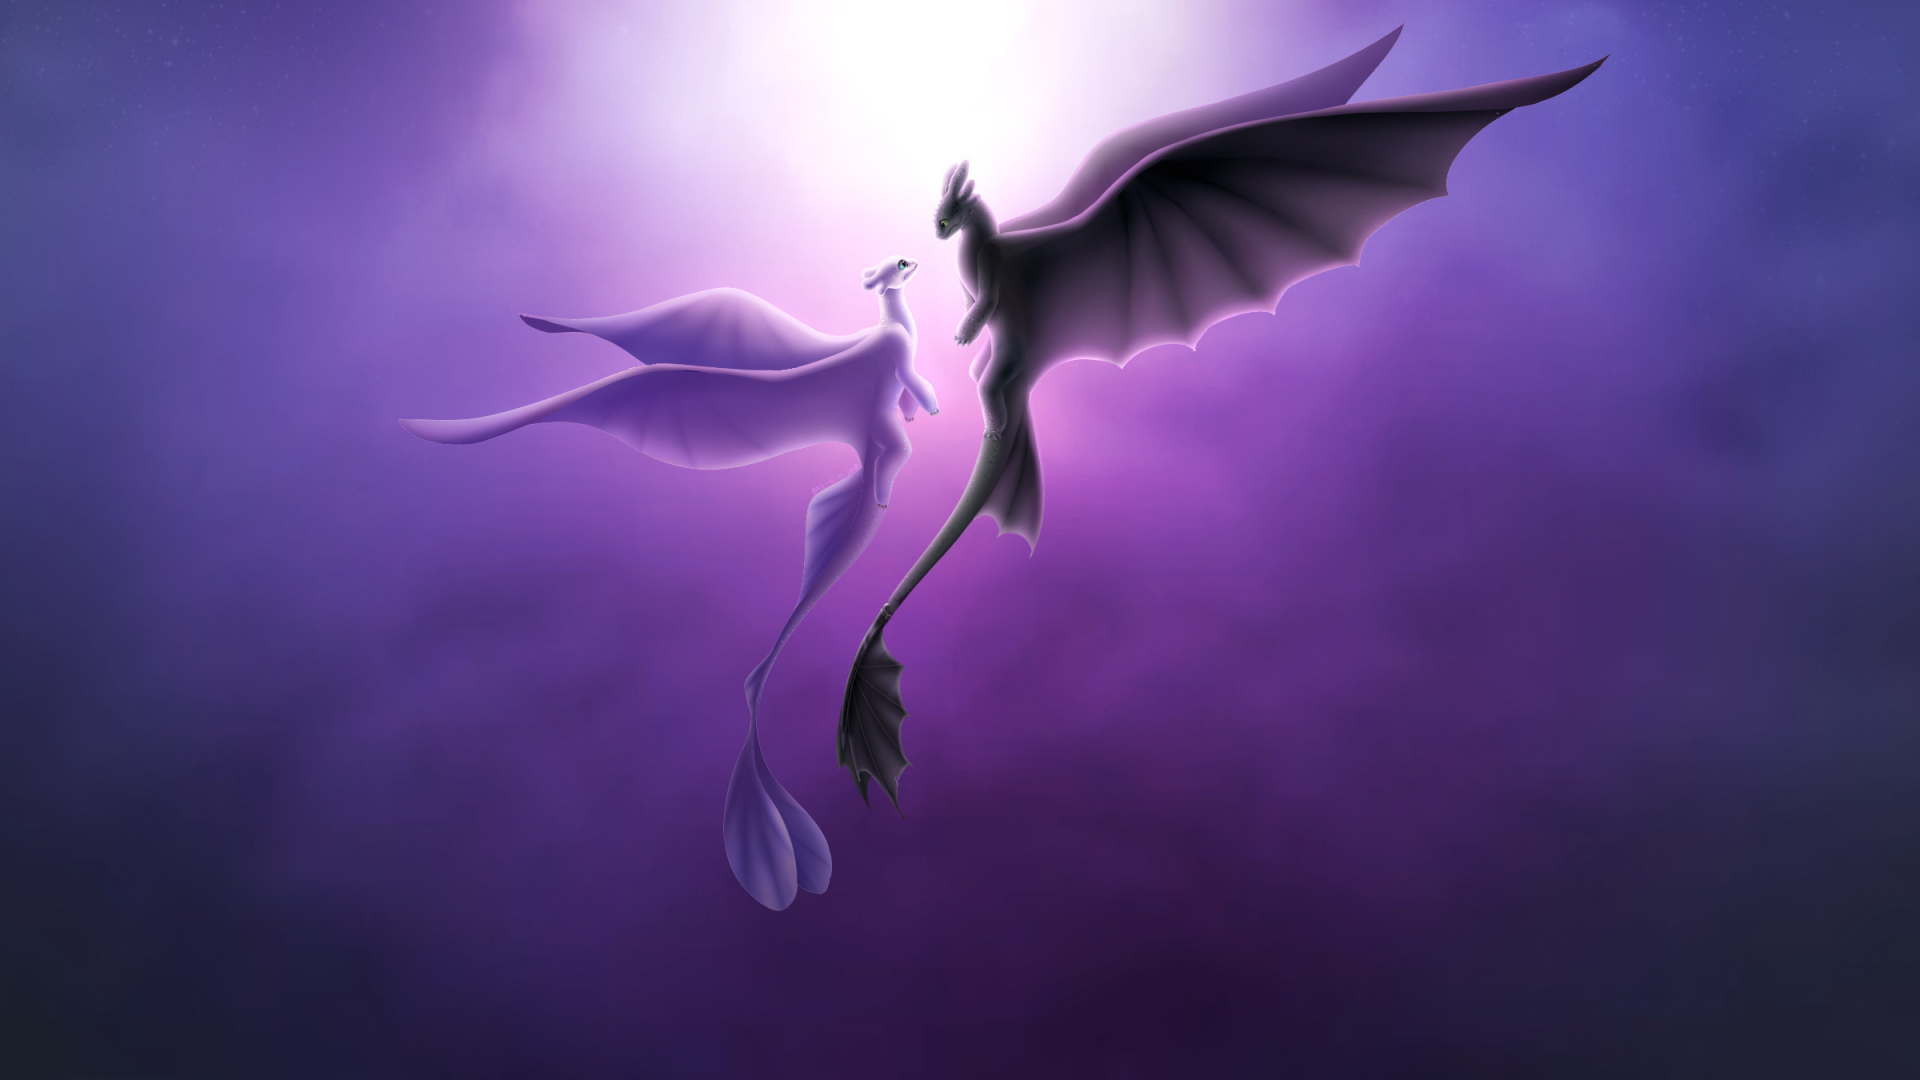 Toothless and light fury, romantic, love, Dragons, 1920x1080 wallpaper